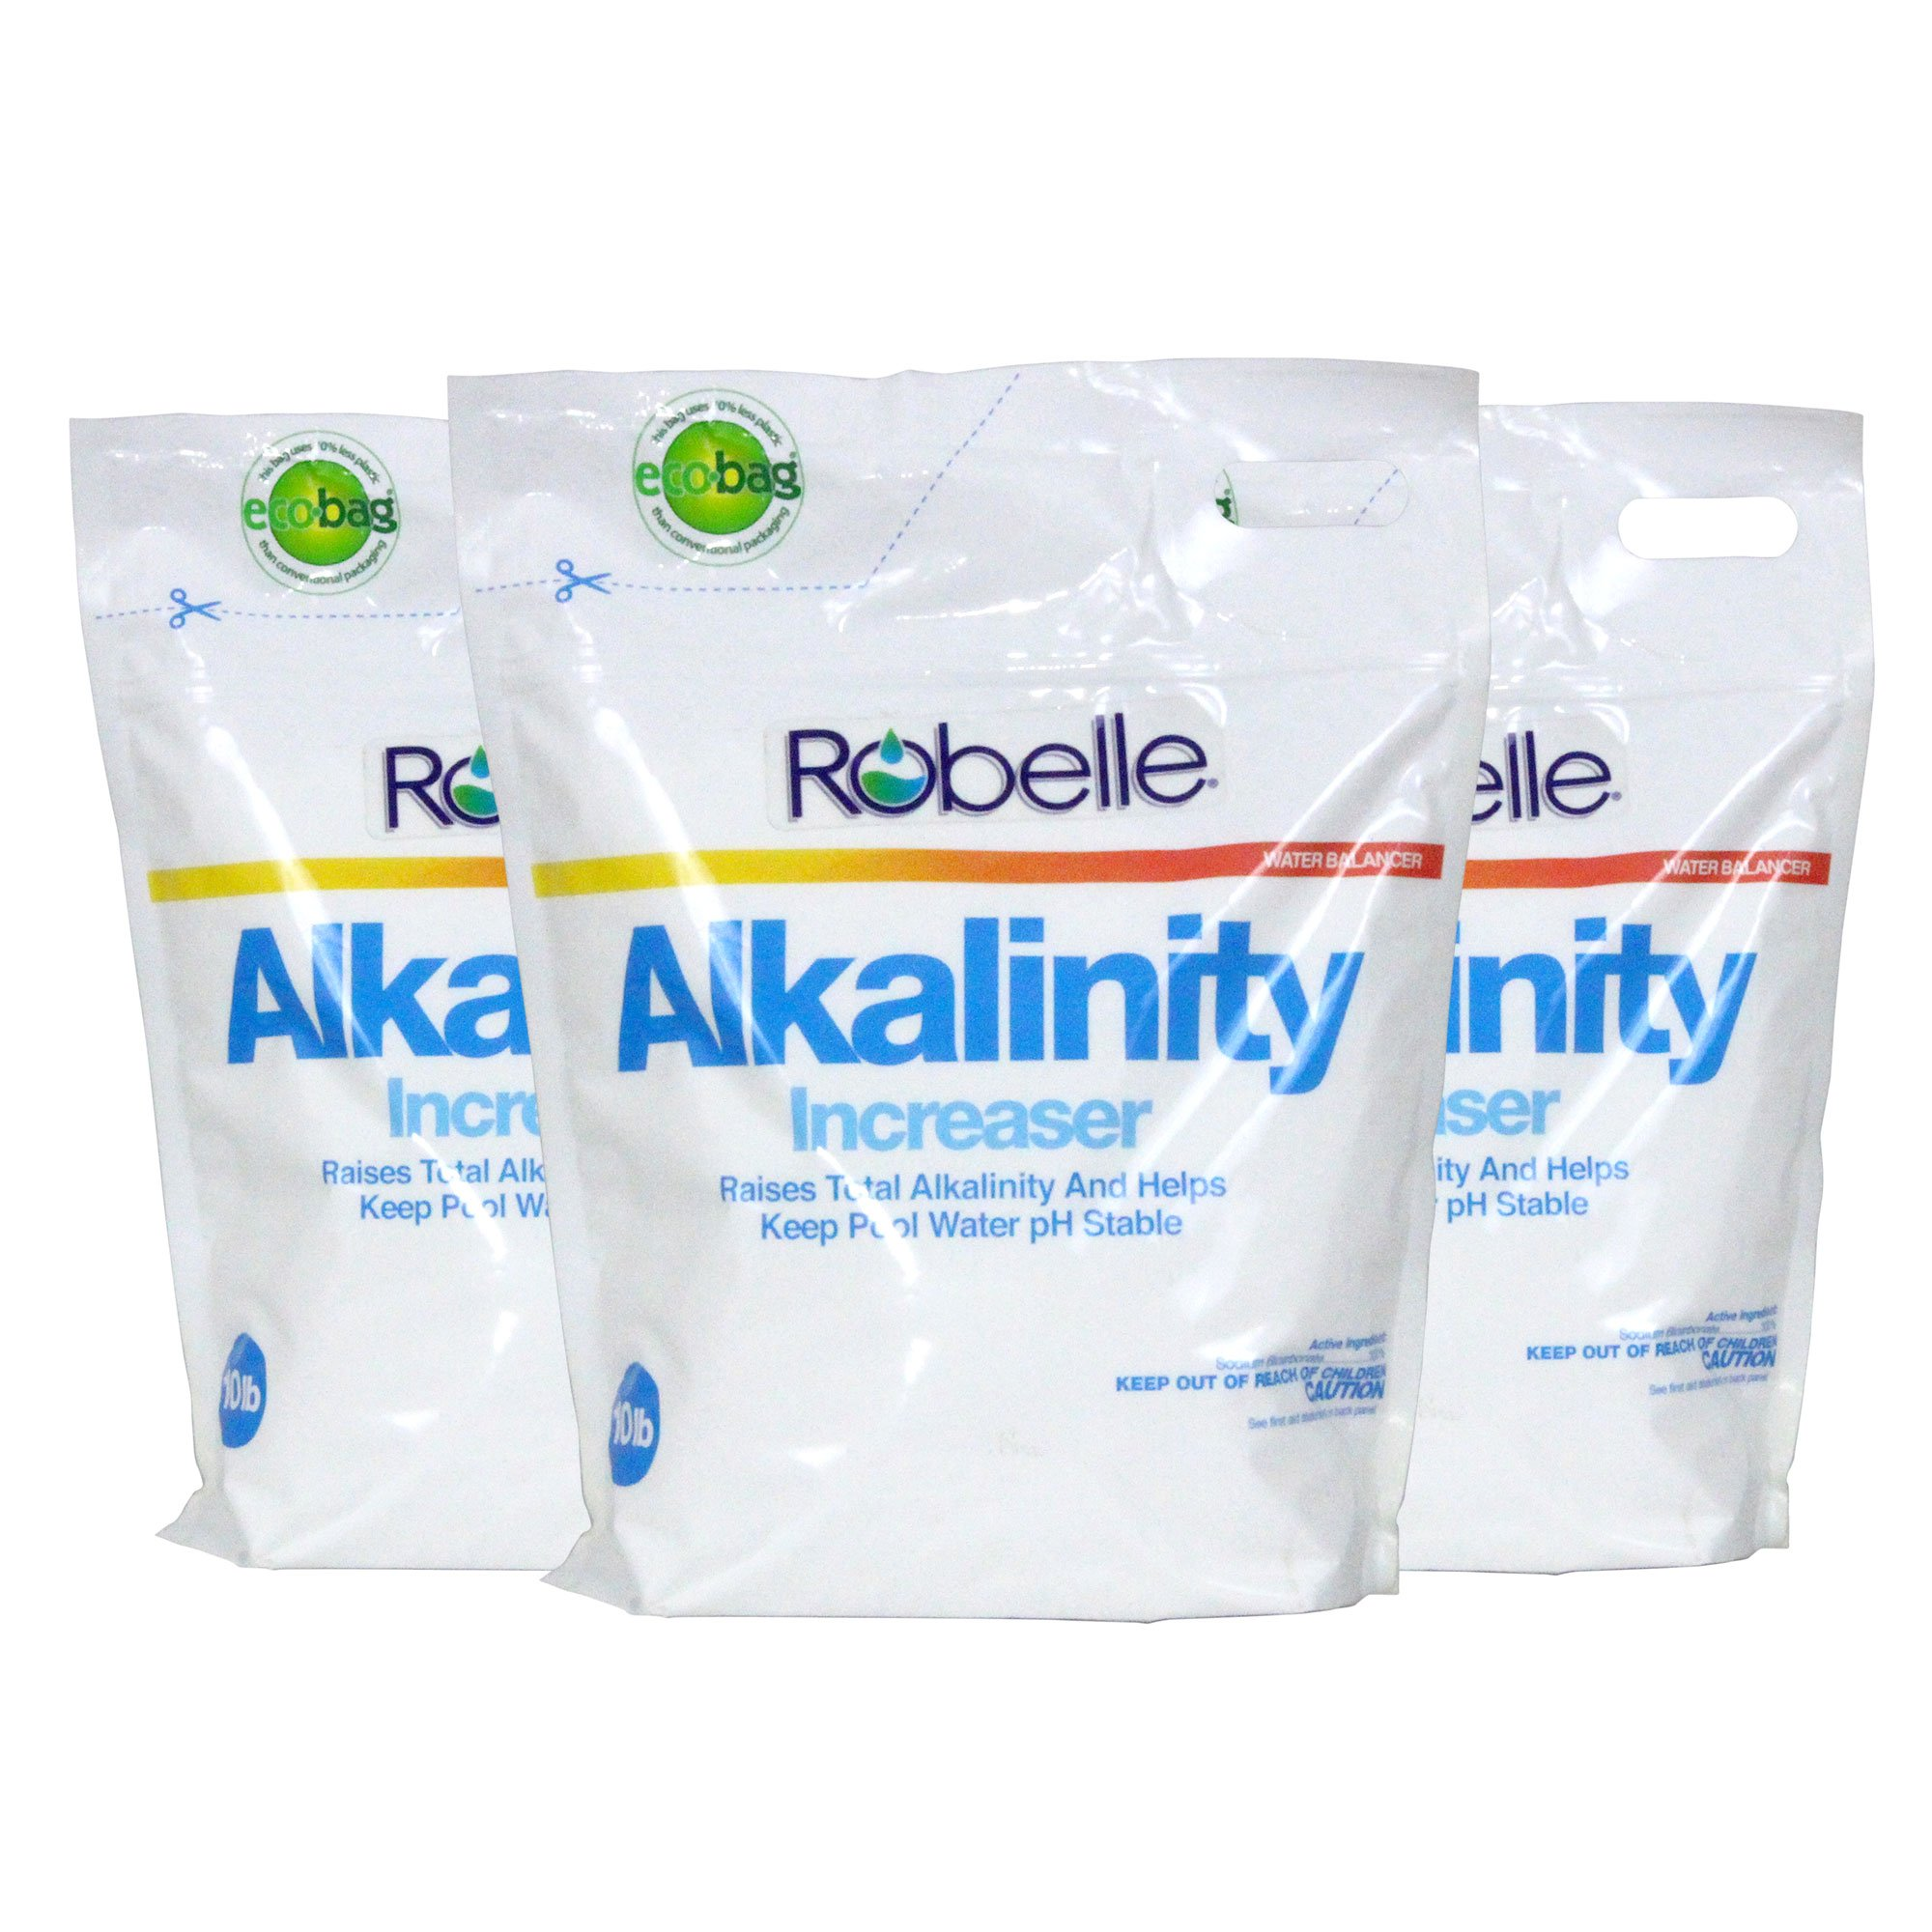 Robelle 2256B-03 Total Alkalinity Increaser for Swimming Pools, 30 lb by Robelle